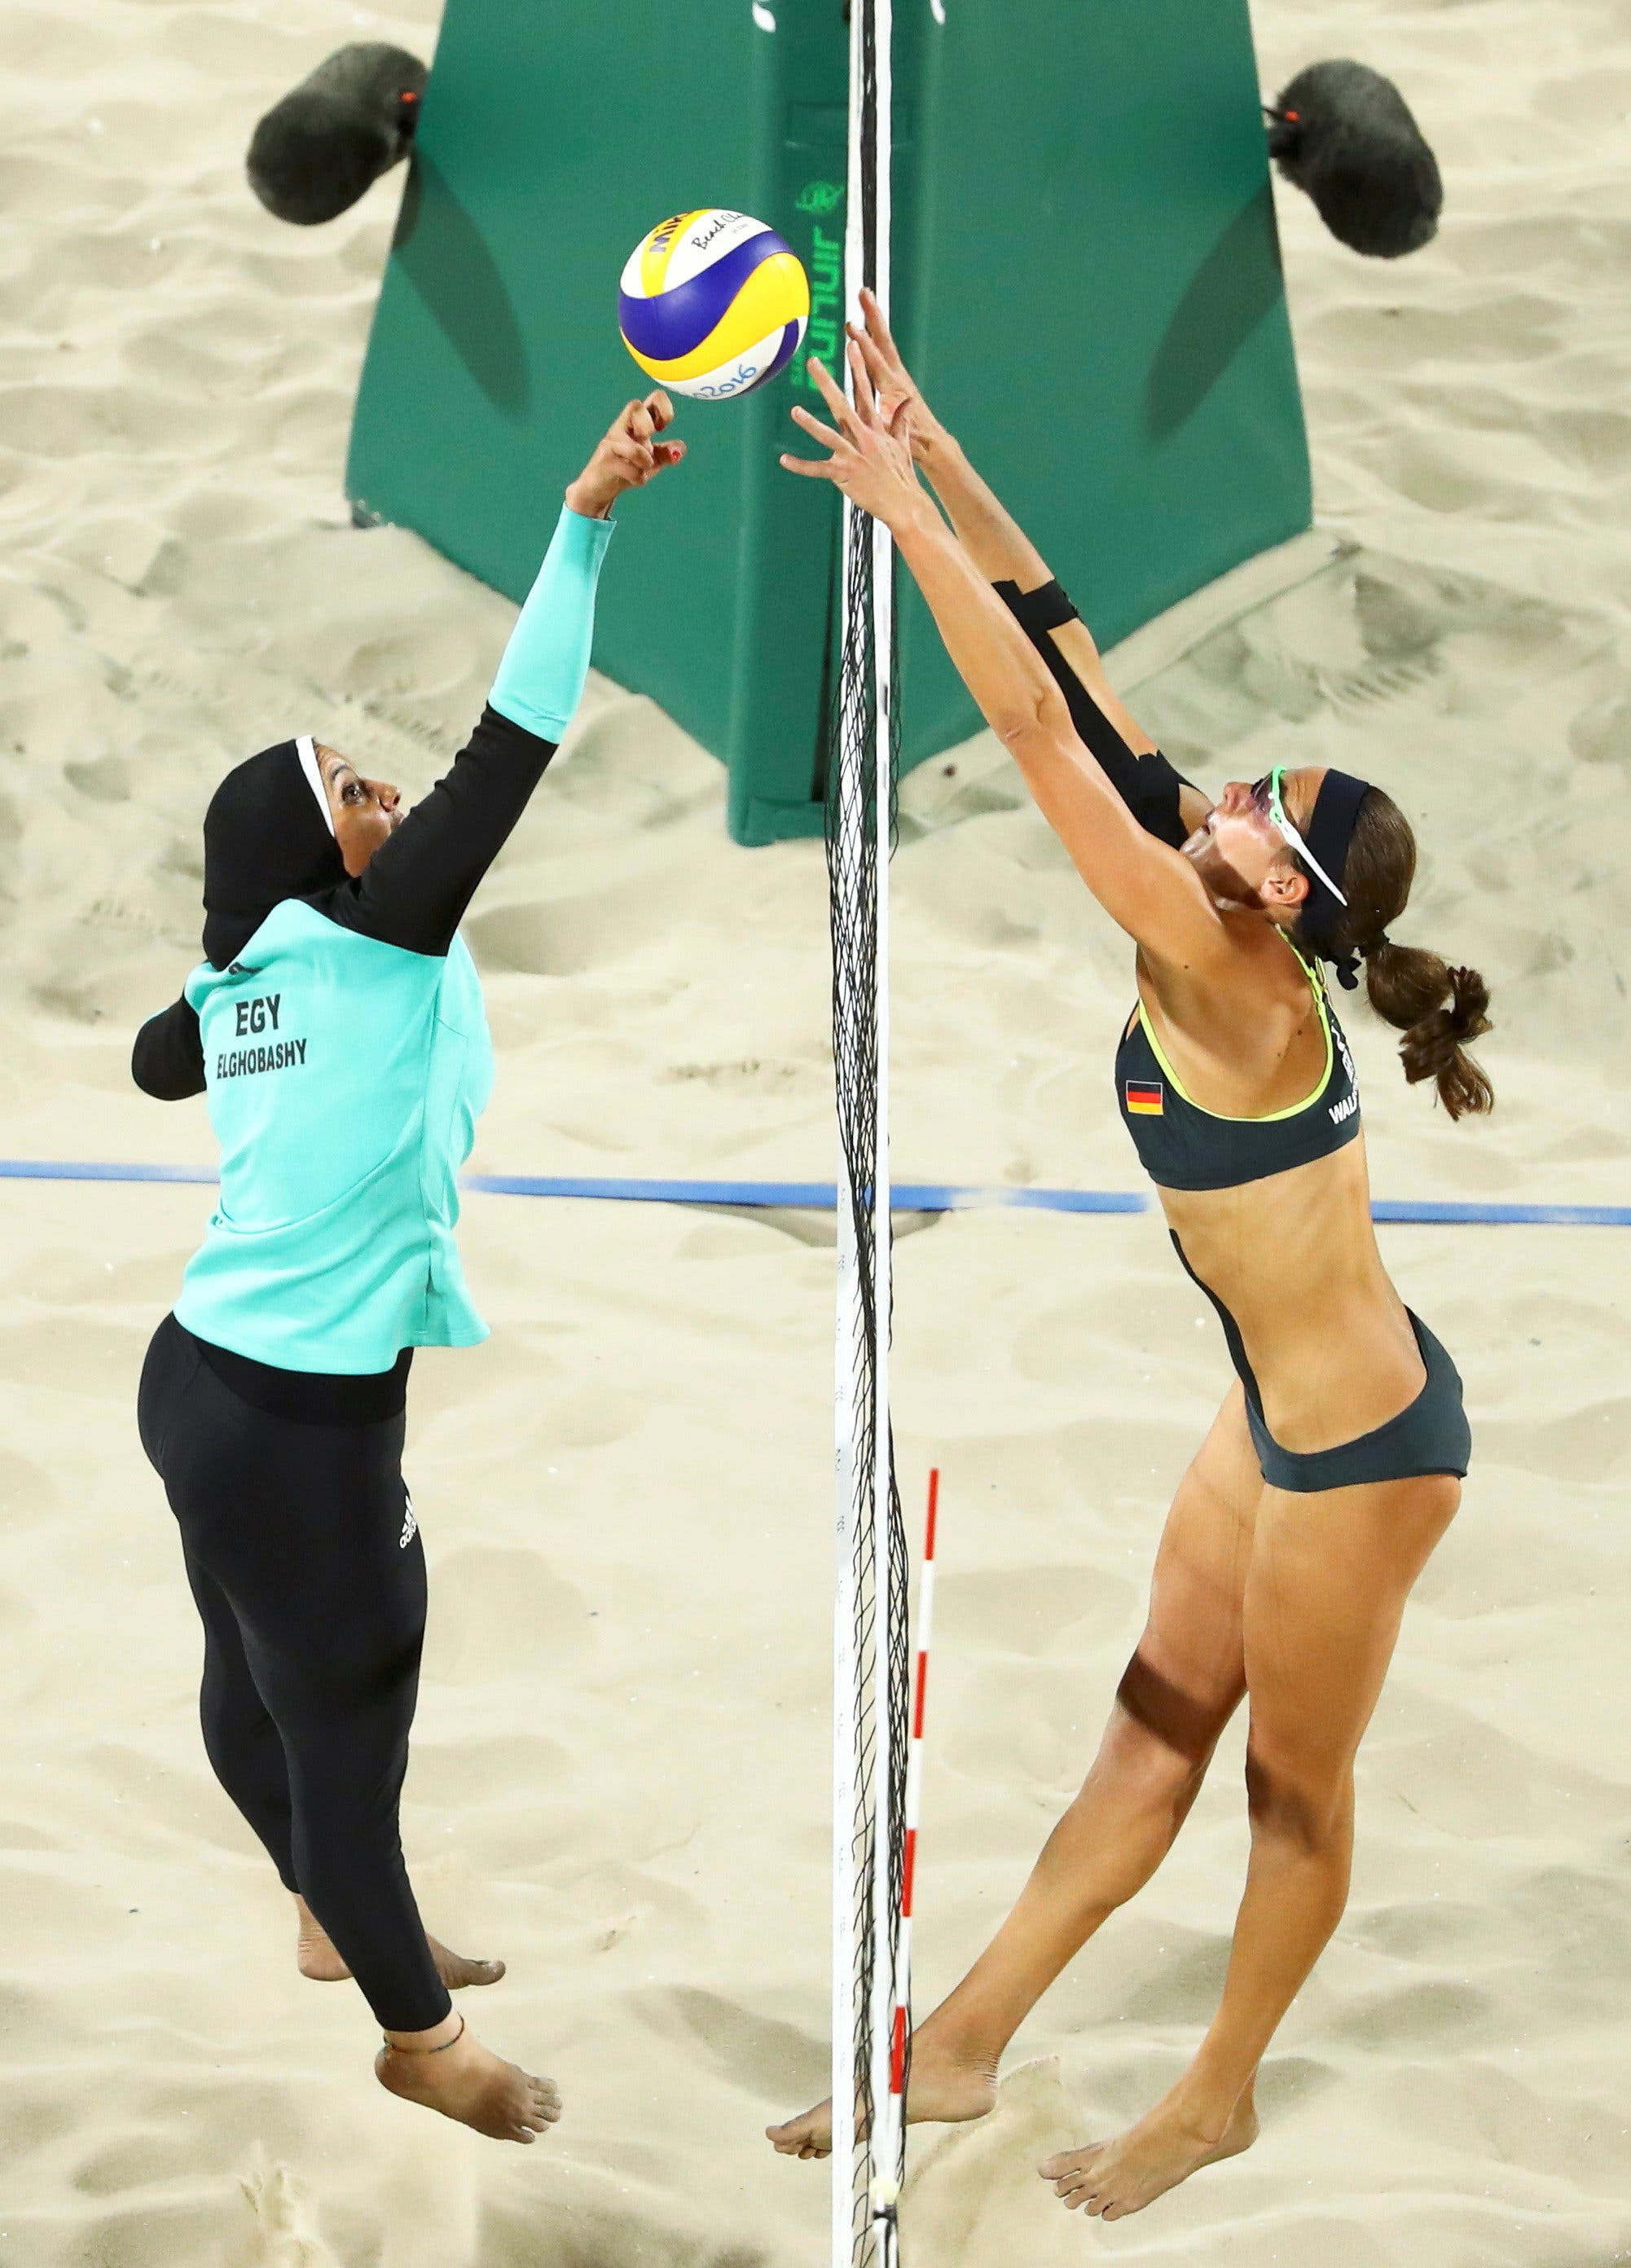 Doaa Elghobashy (EGY) of Egypt and Kira Walkenhorst (GER) of Germany compete. REUTERS